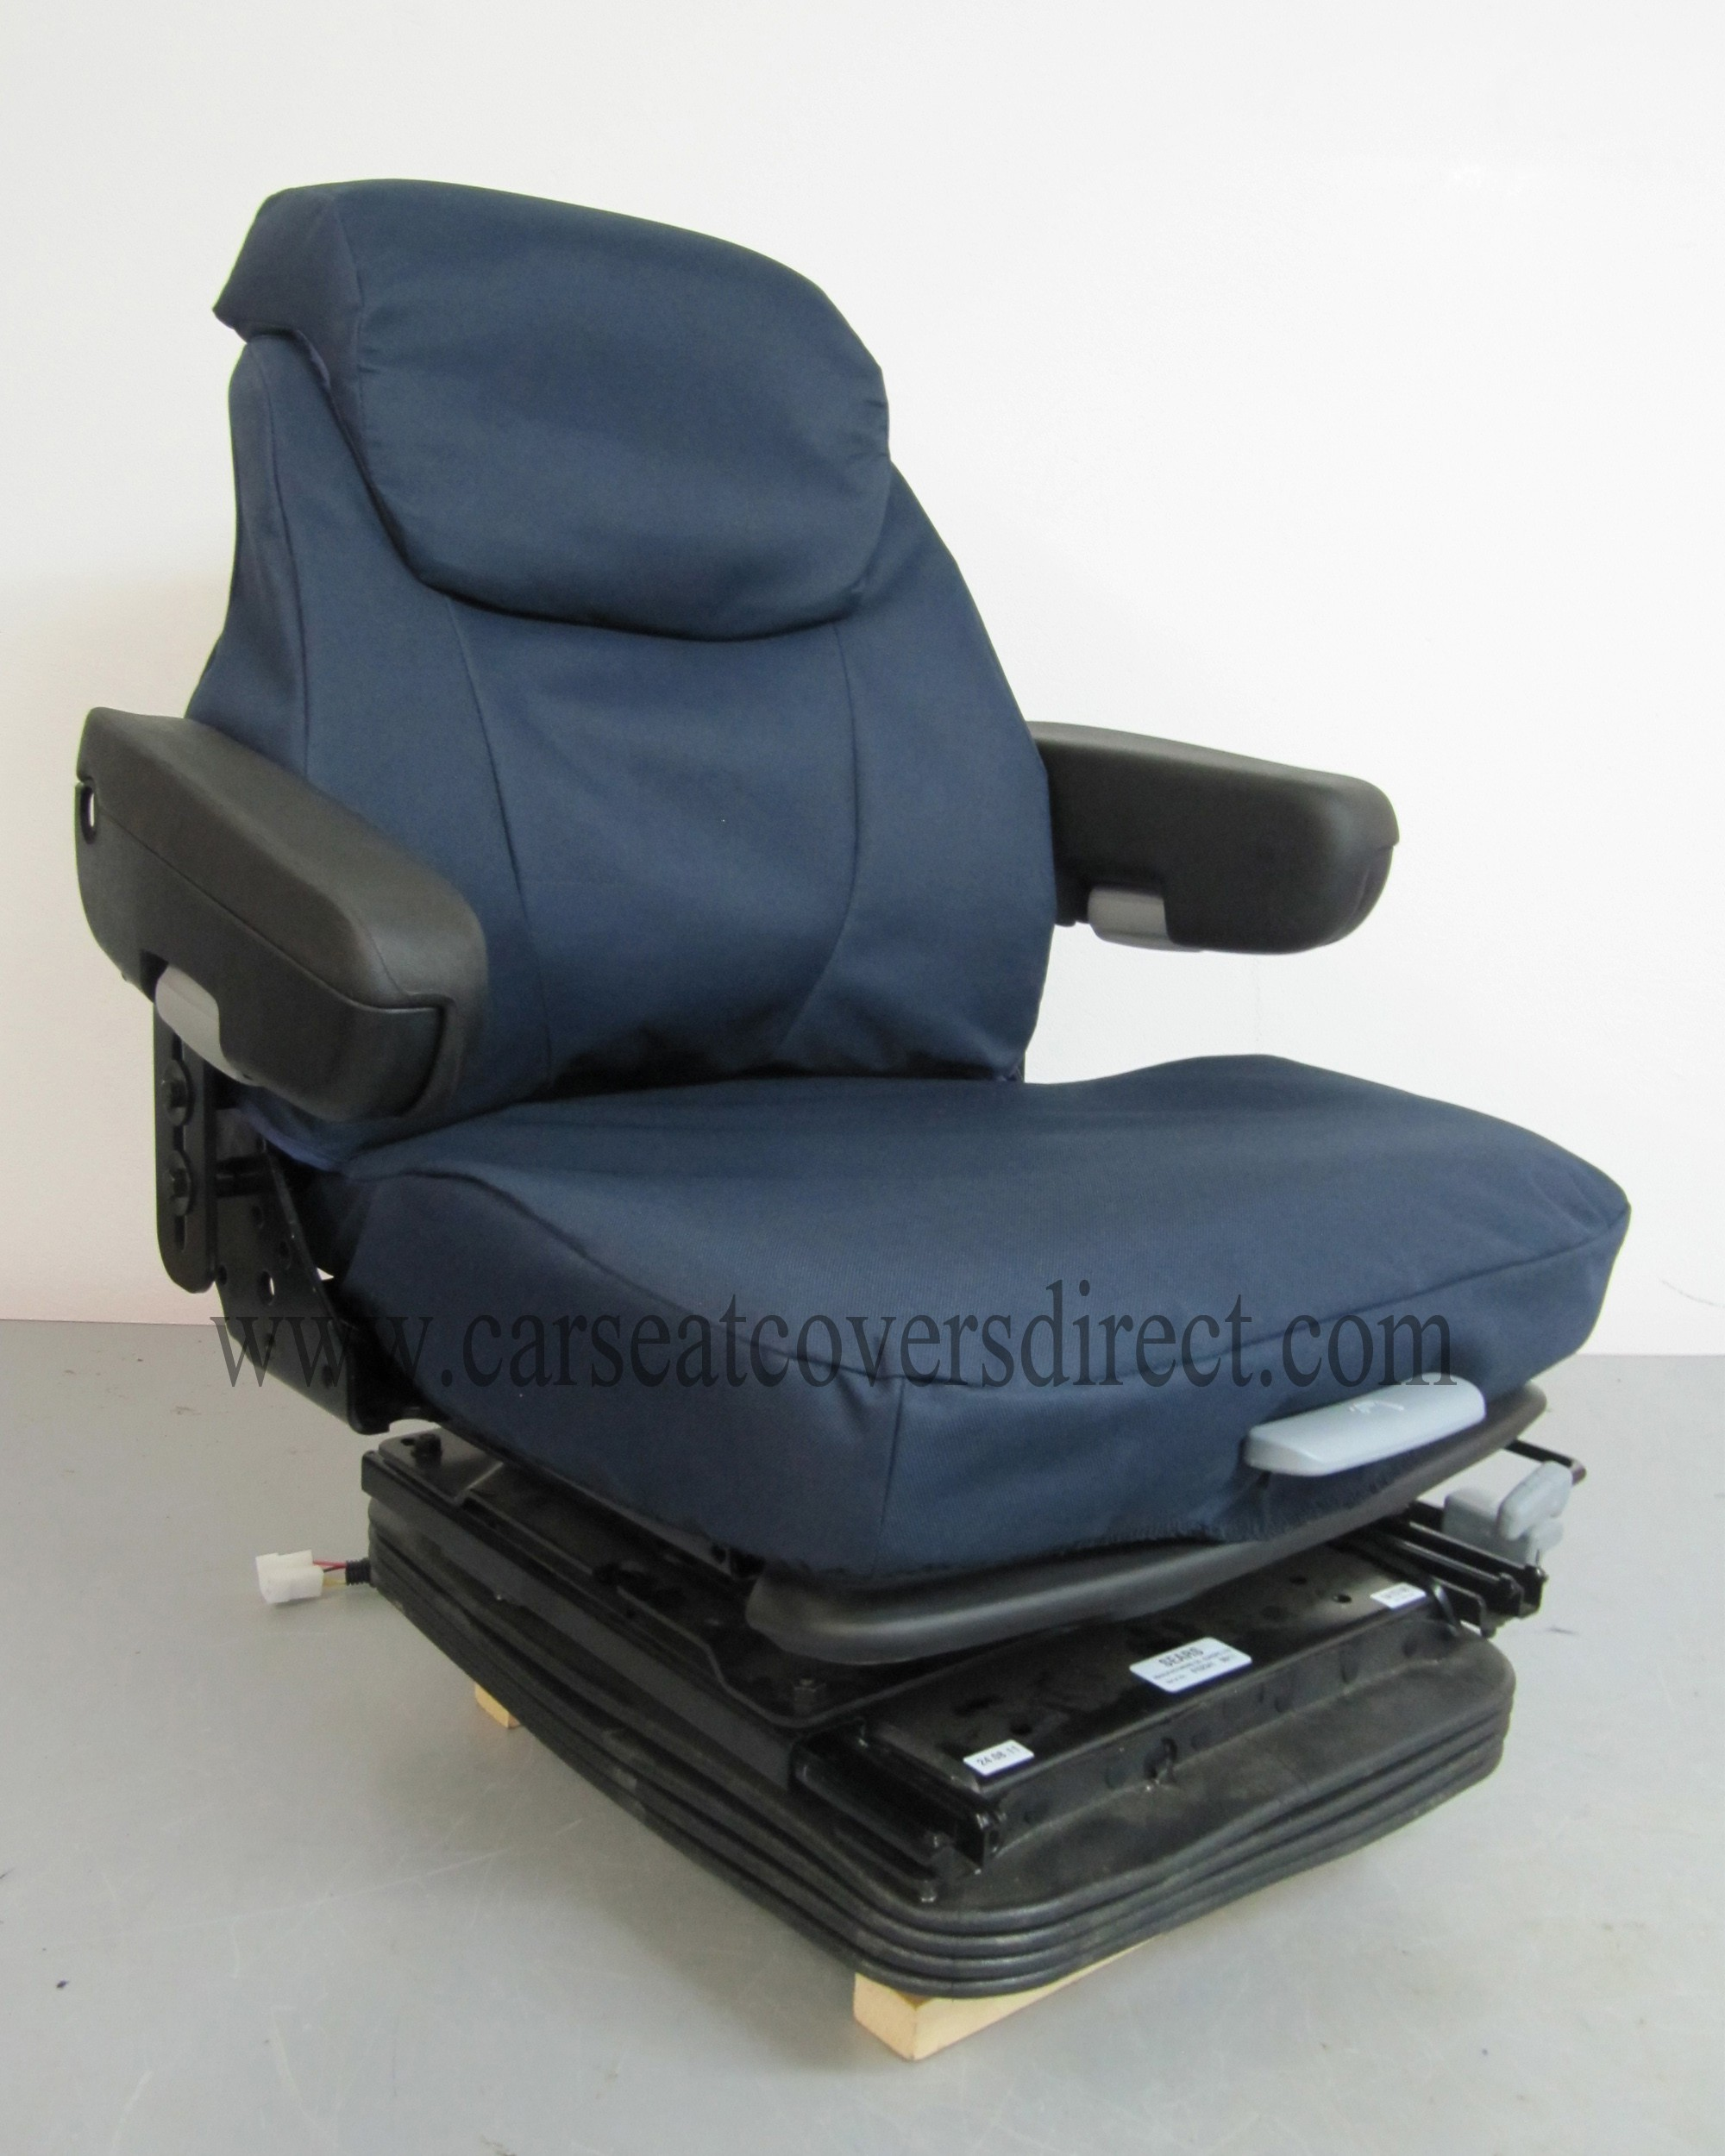 Tractor Seat And Seat Covers : New holland tractor seat cover music search engine at